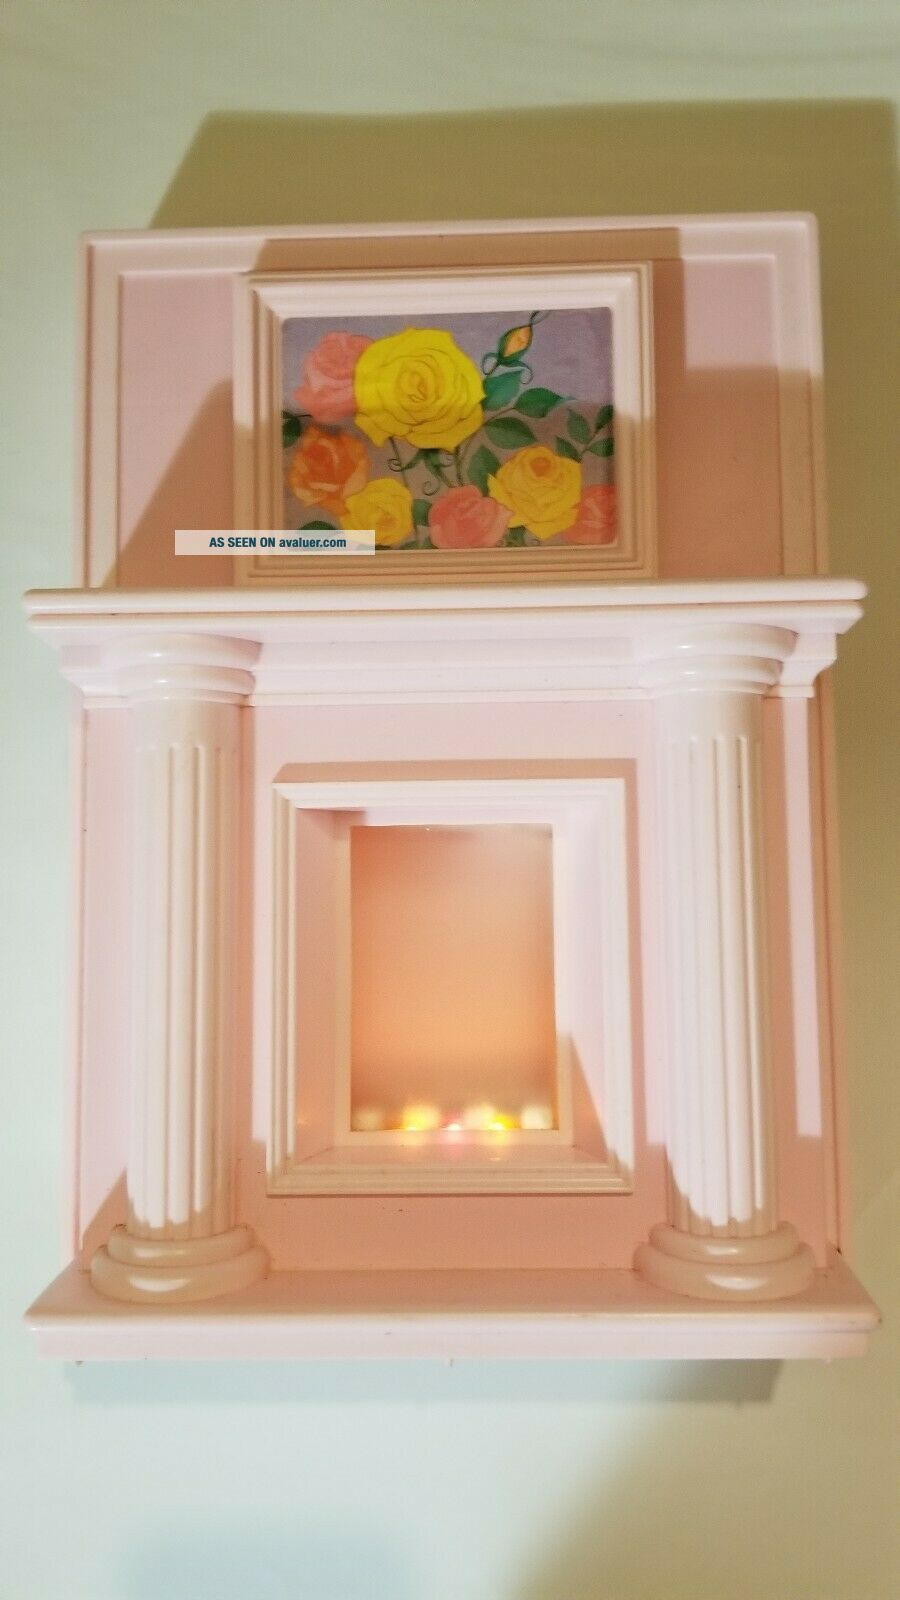 1990 Barbie Magical Mansion fireplace.  Extremly rare